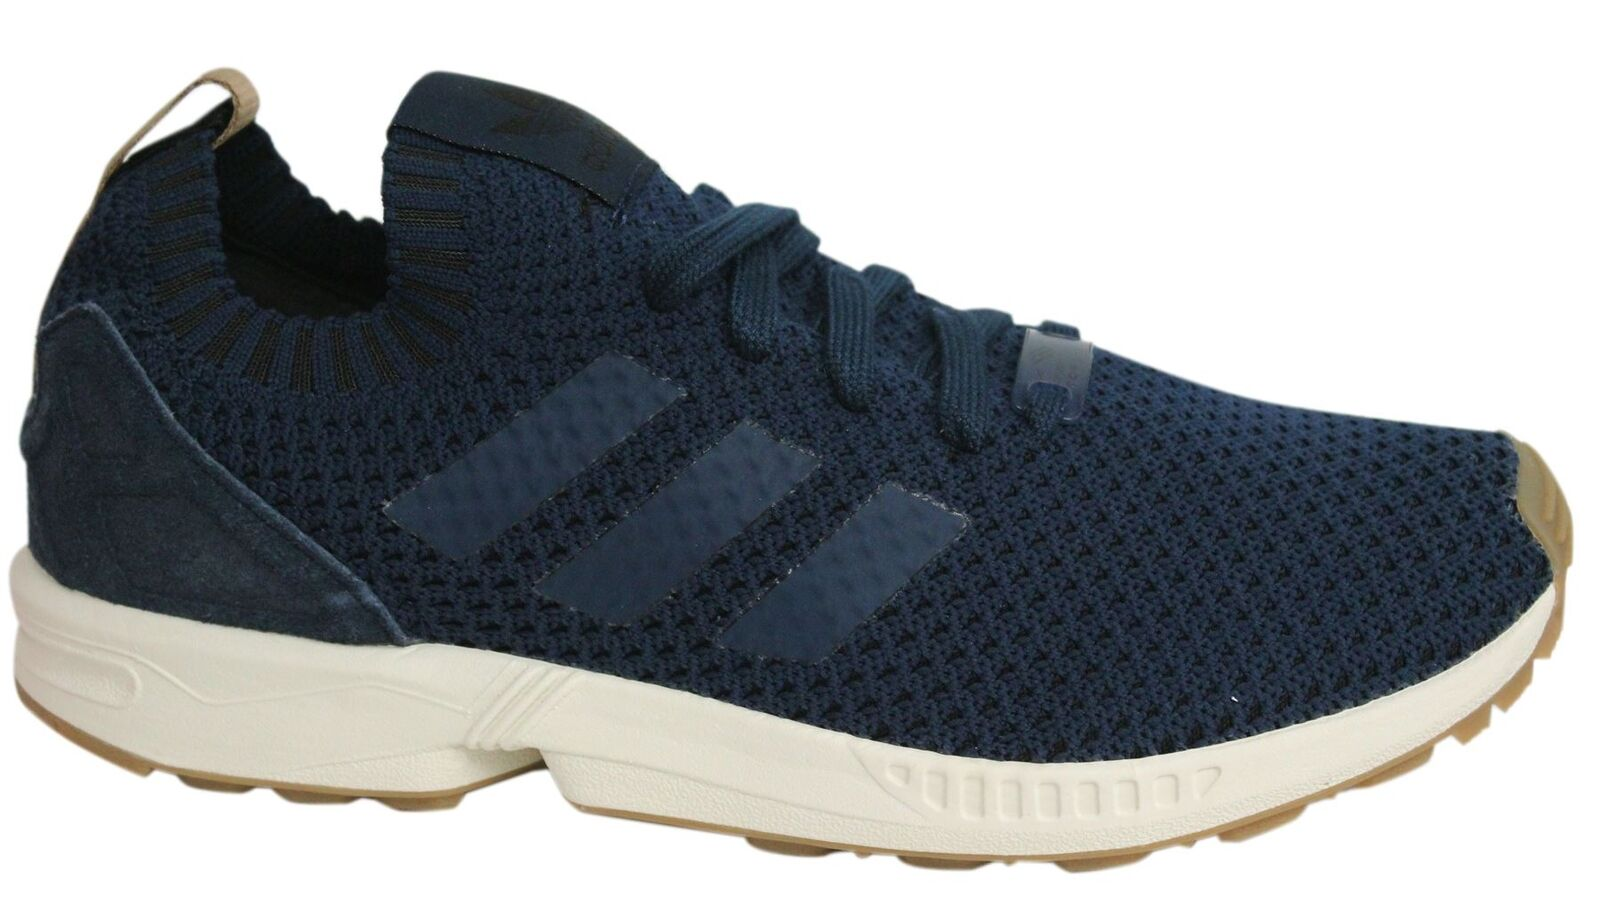 Adidas ZX Flux PK Lace Up Hombre Navy Azul Knitted Textile Hombre Up Trainers BA7372 U14 30518c